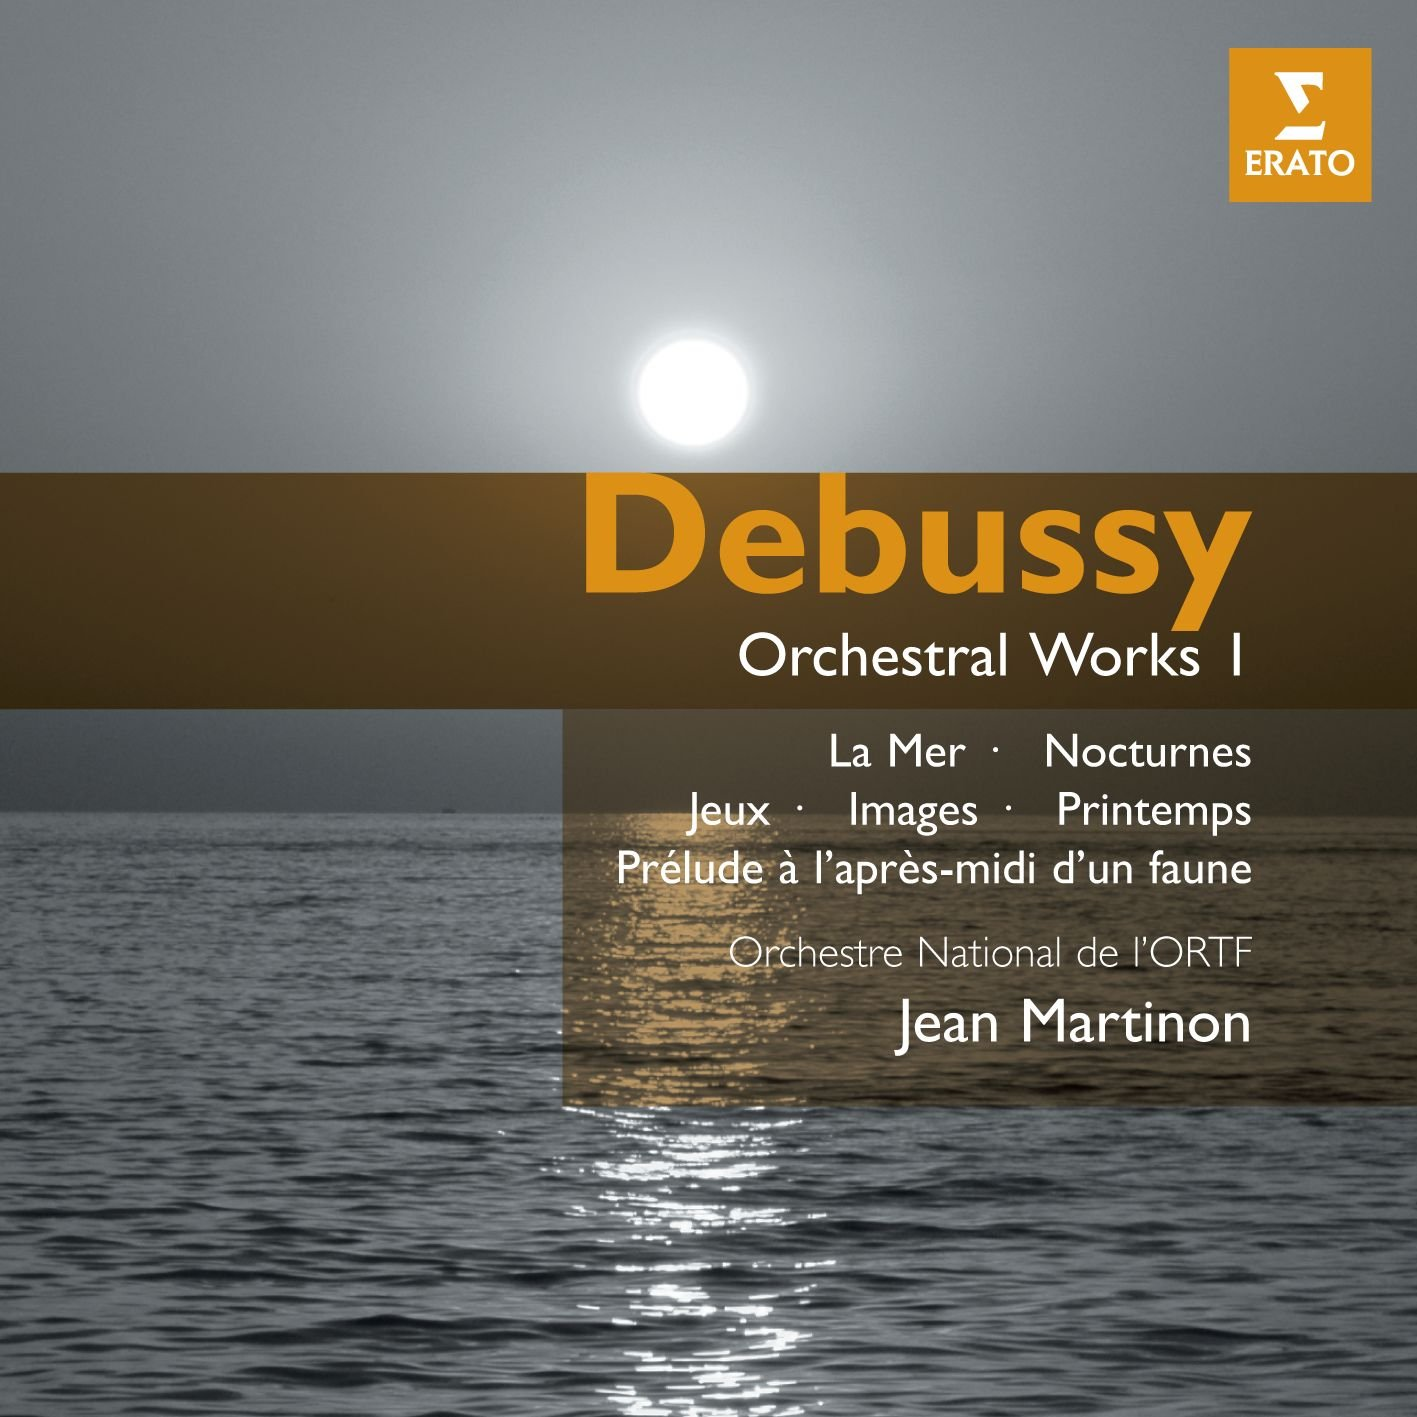 Debussy: Orchestral Works I by Warner Classics